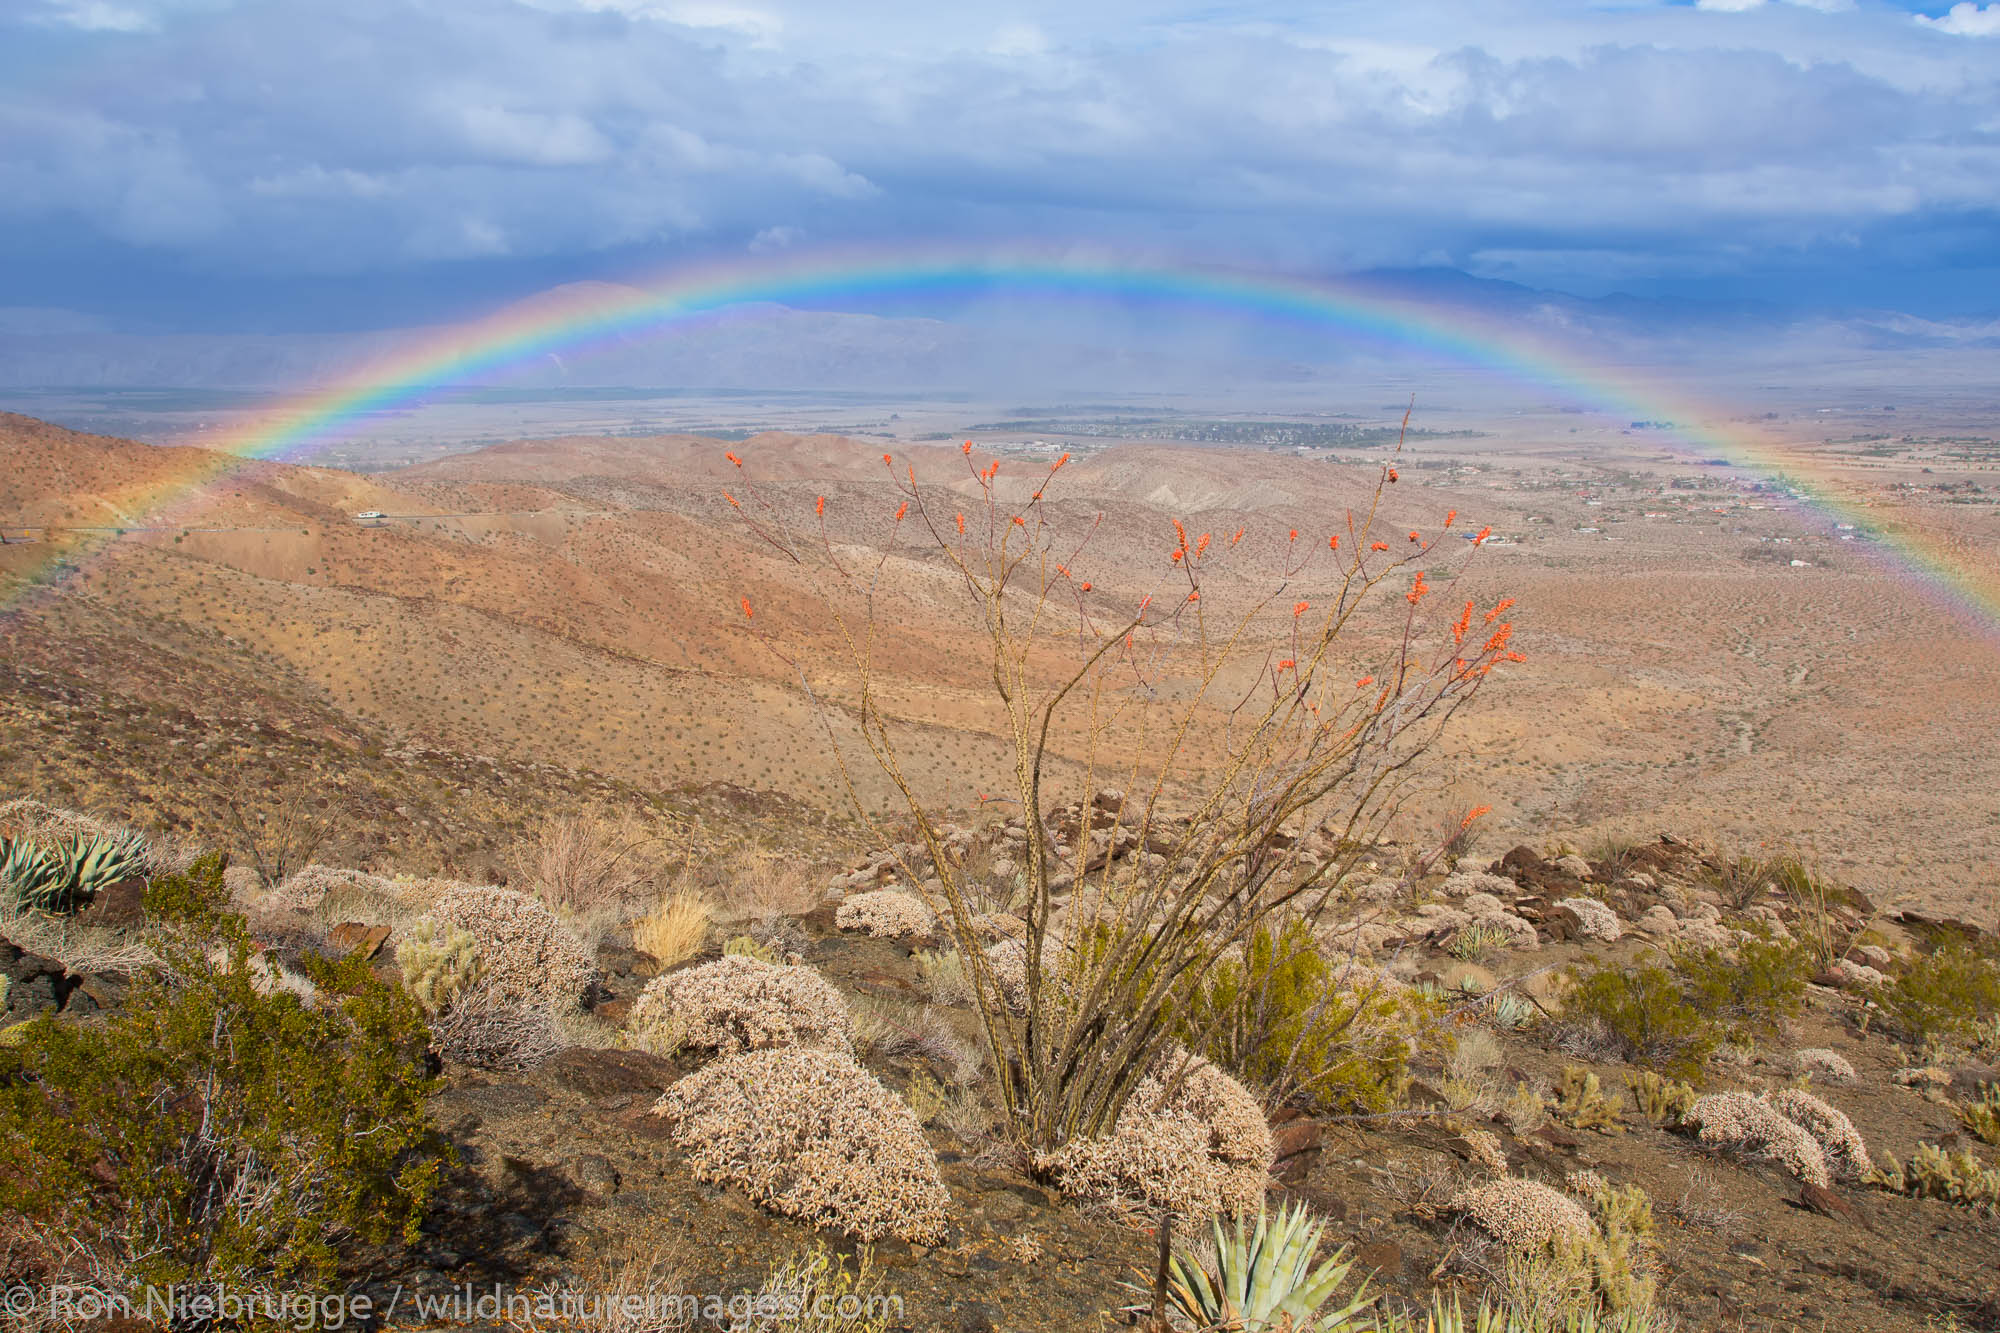 Rainbow over Anza-Borrego Desert State Park, California.